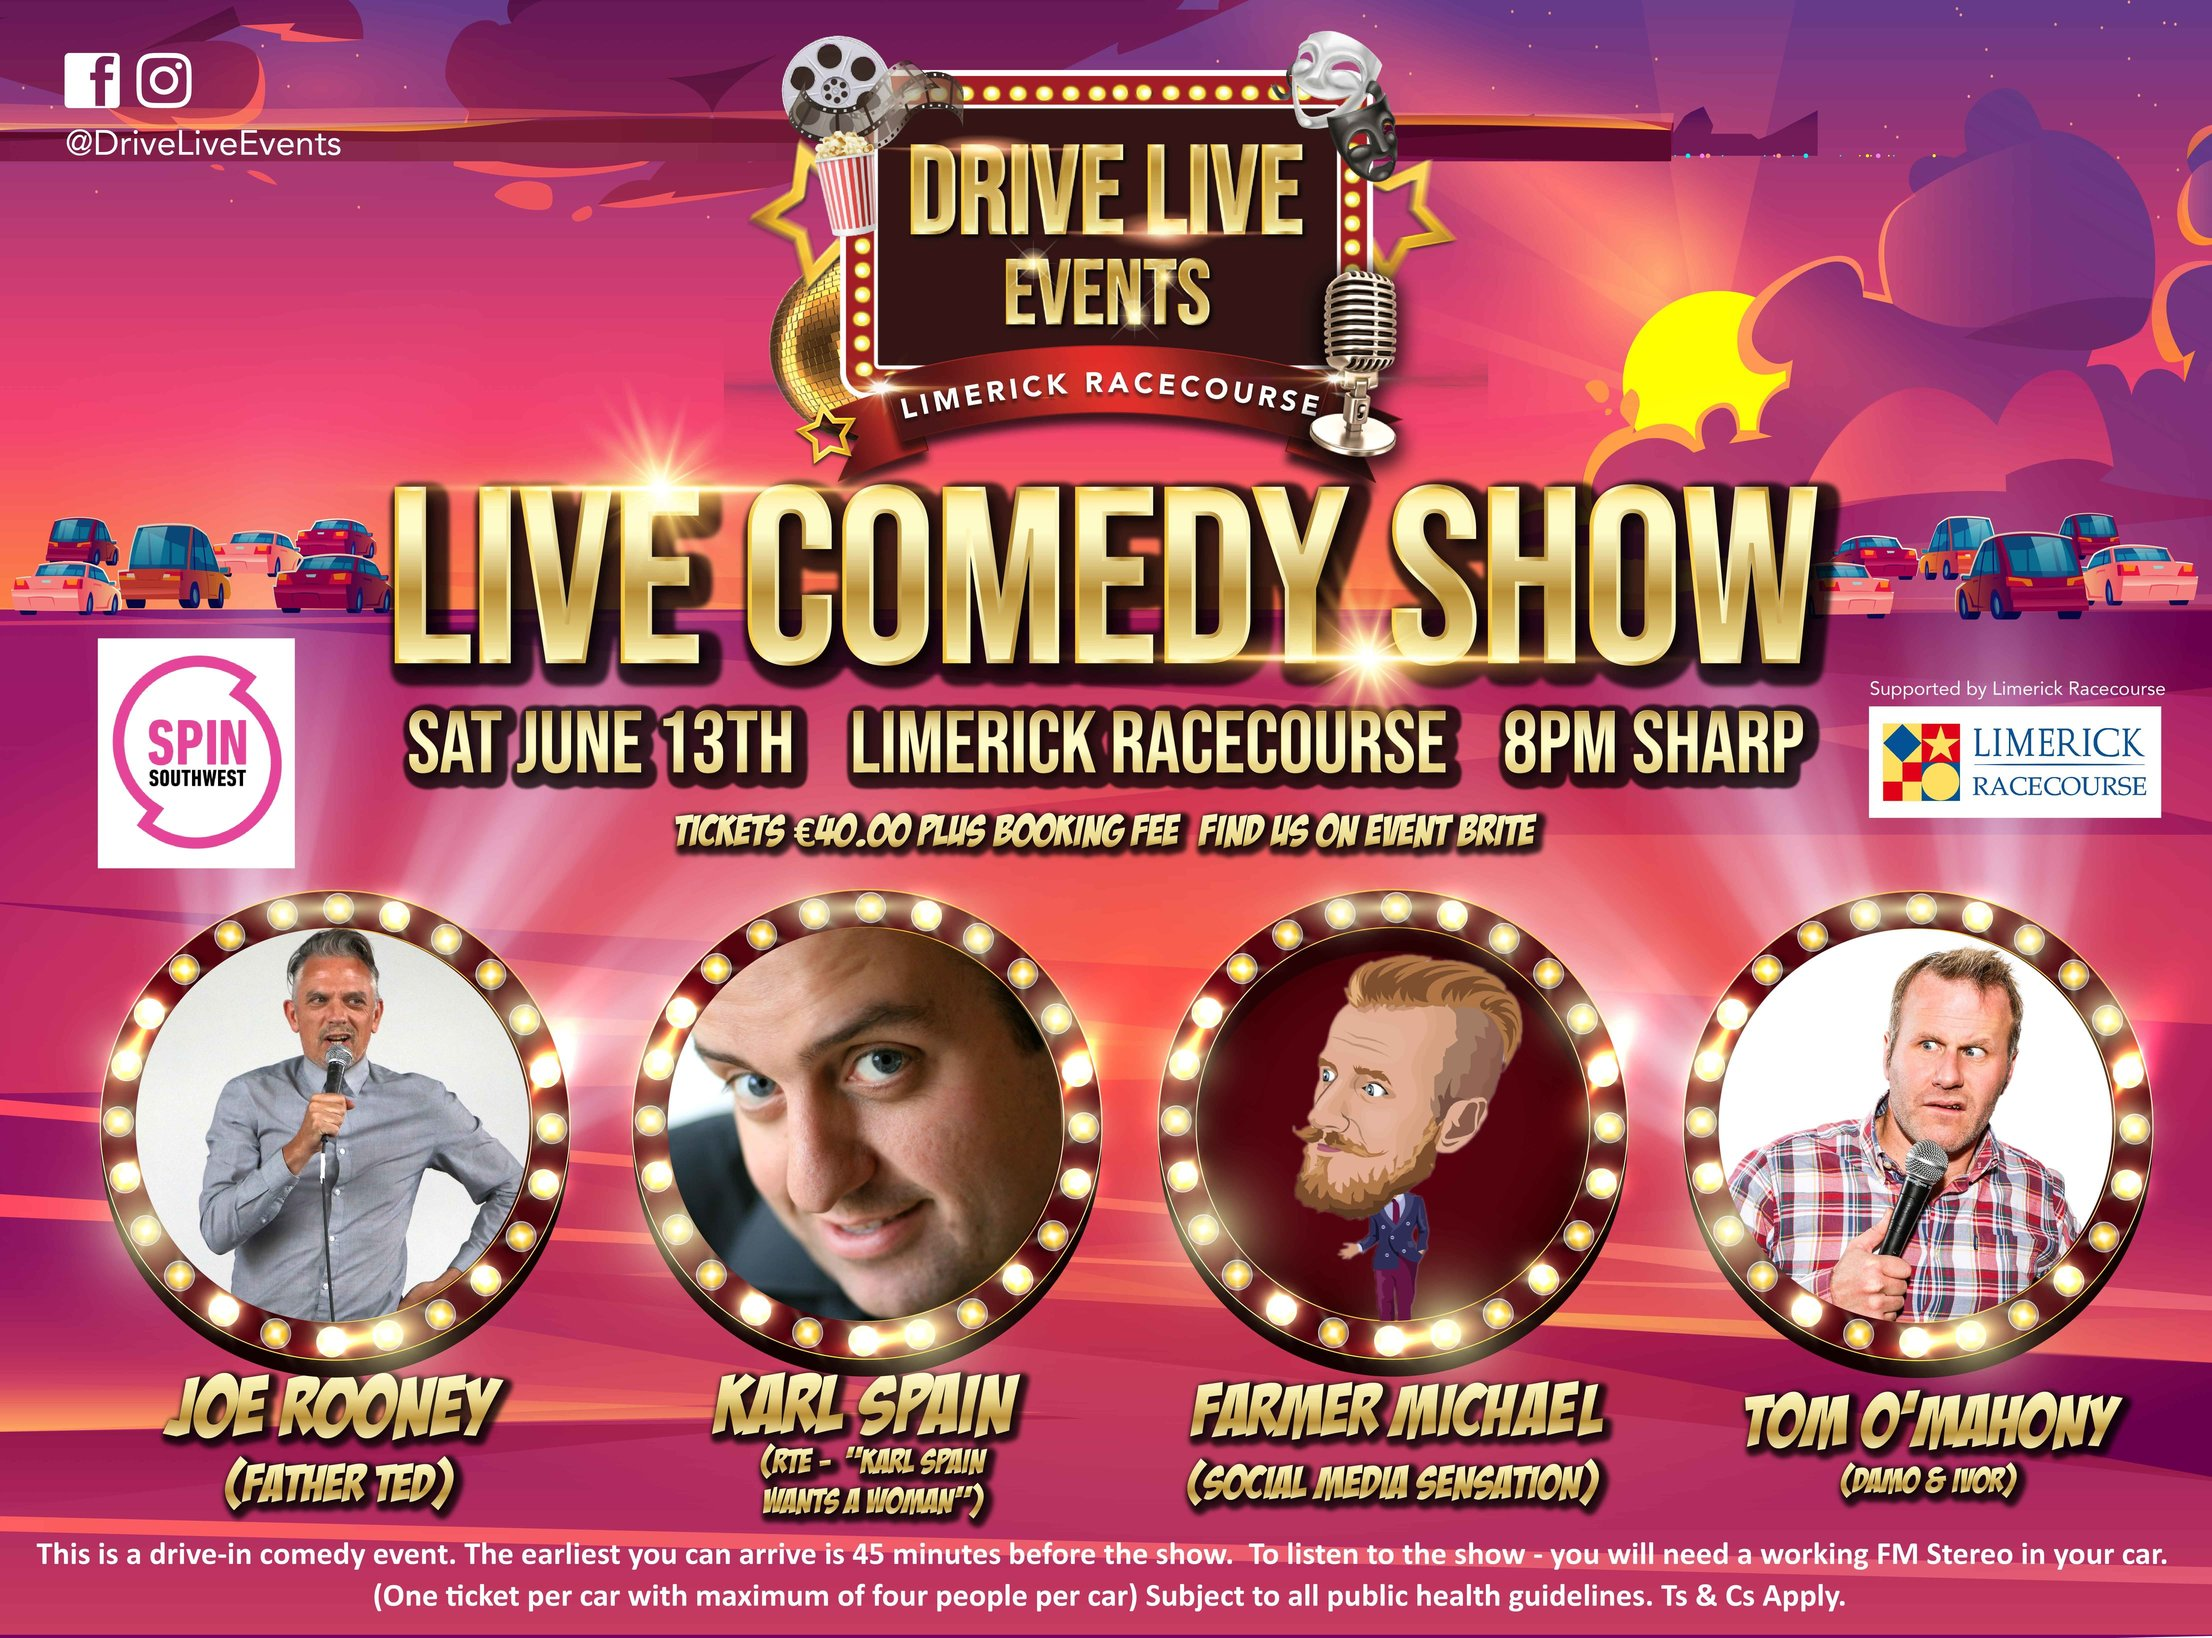 Drive Live Events